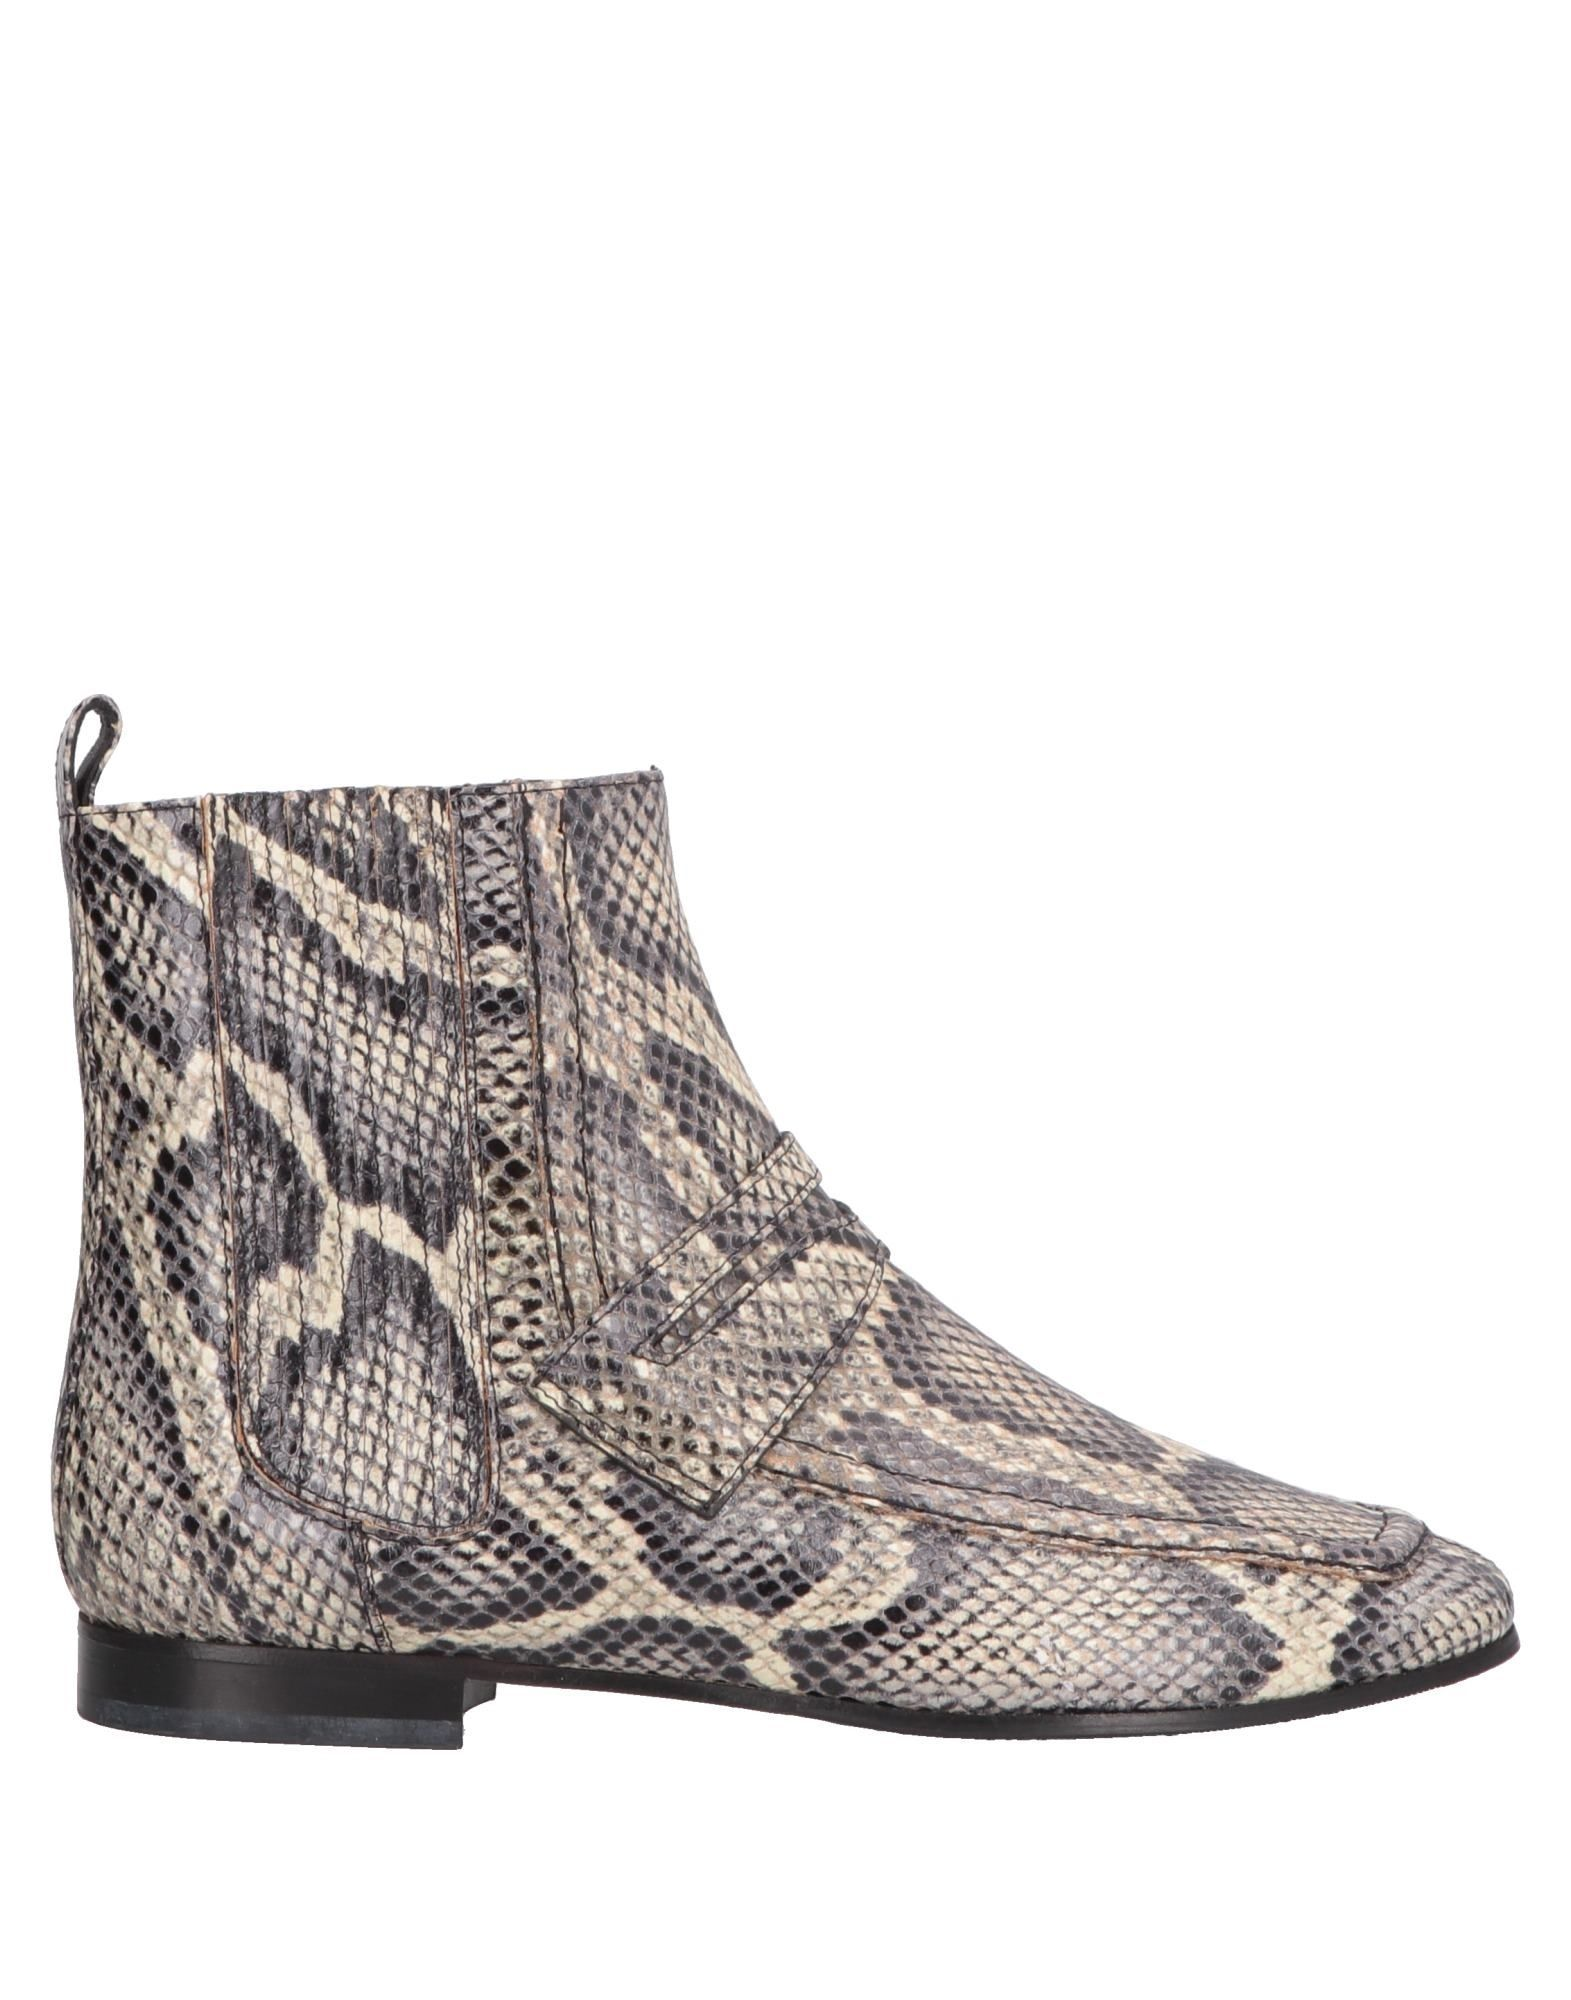 Escada Sport Beige Snakeskin Print Leather Ankle Boots